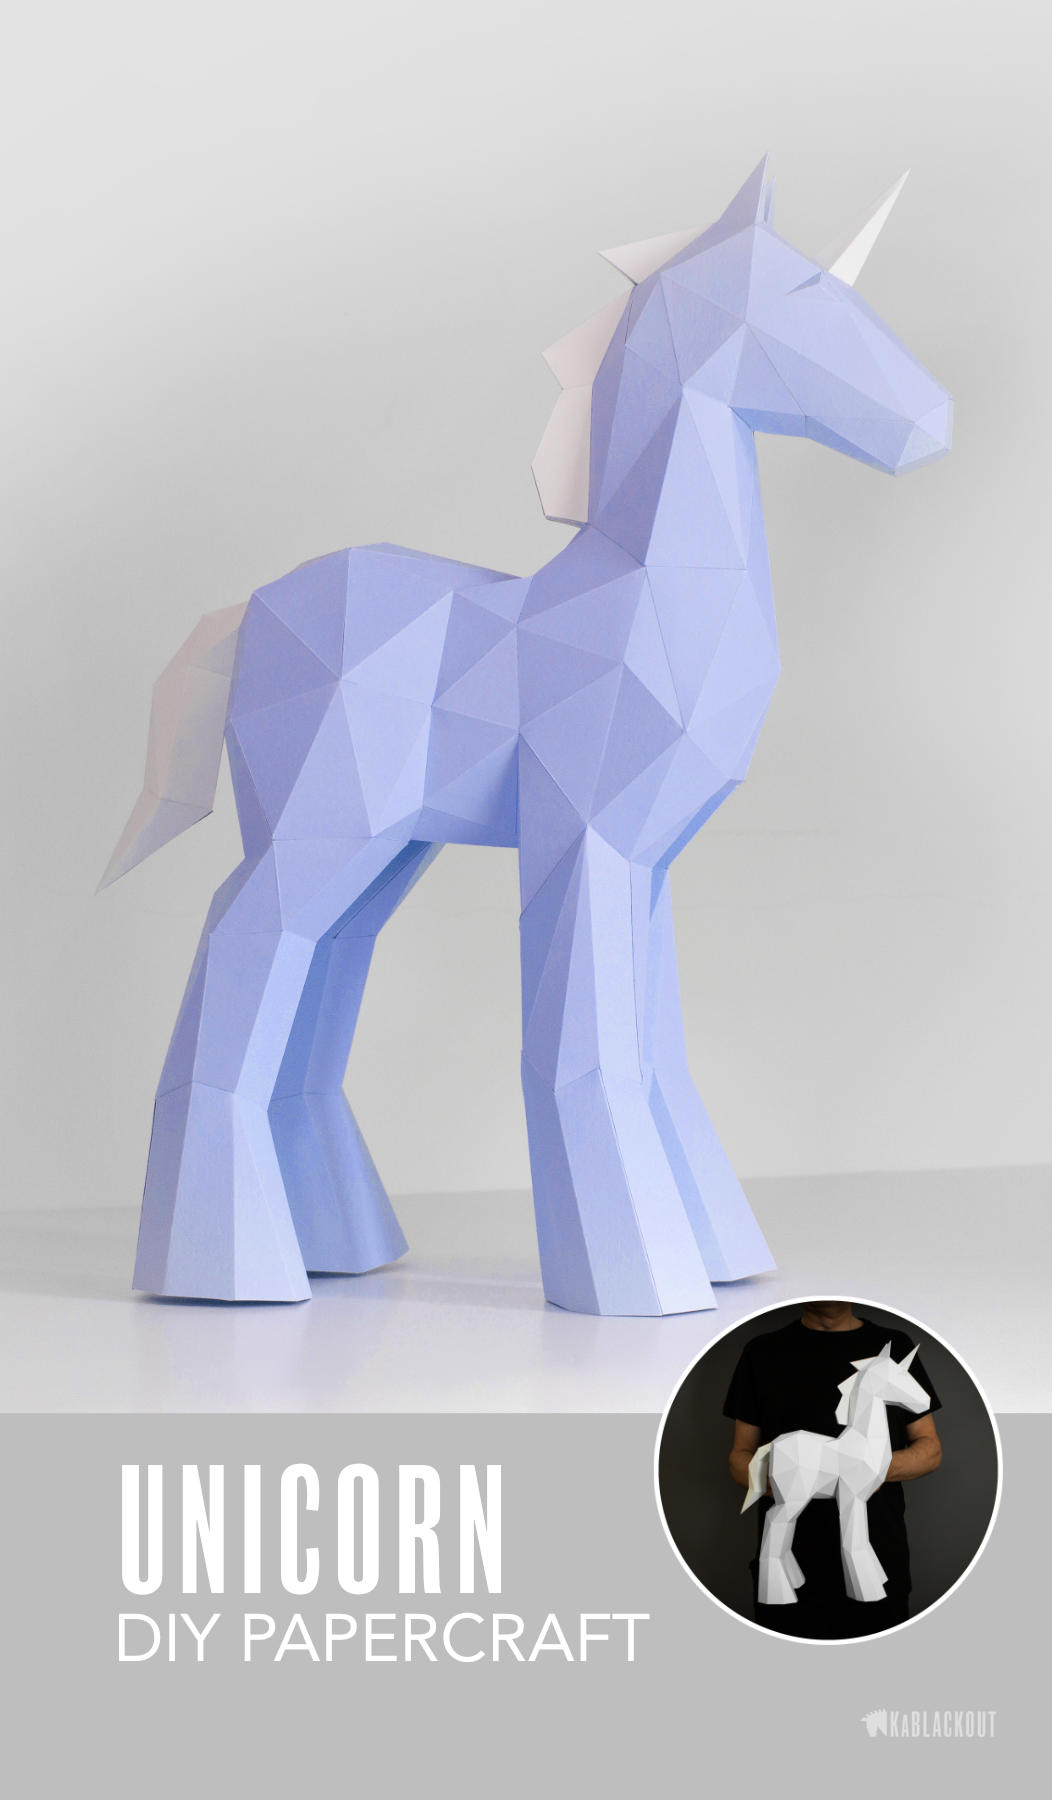 unicorn papercraft template image